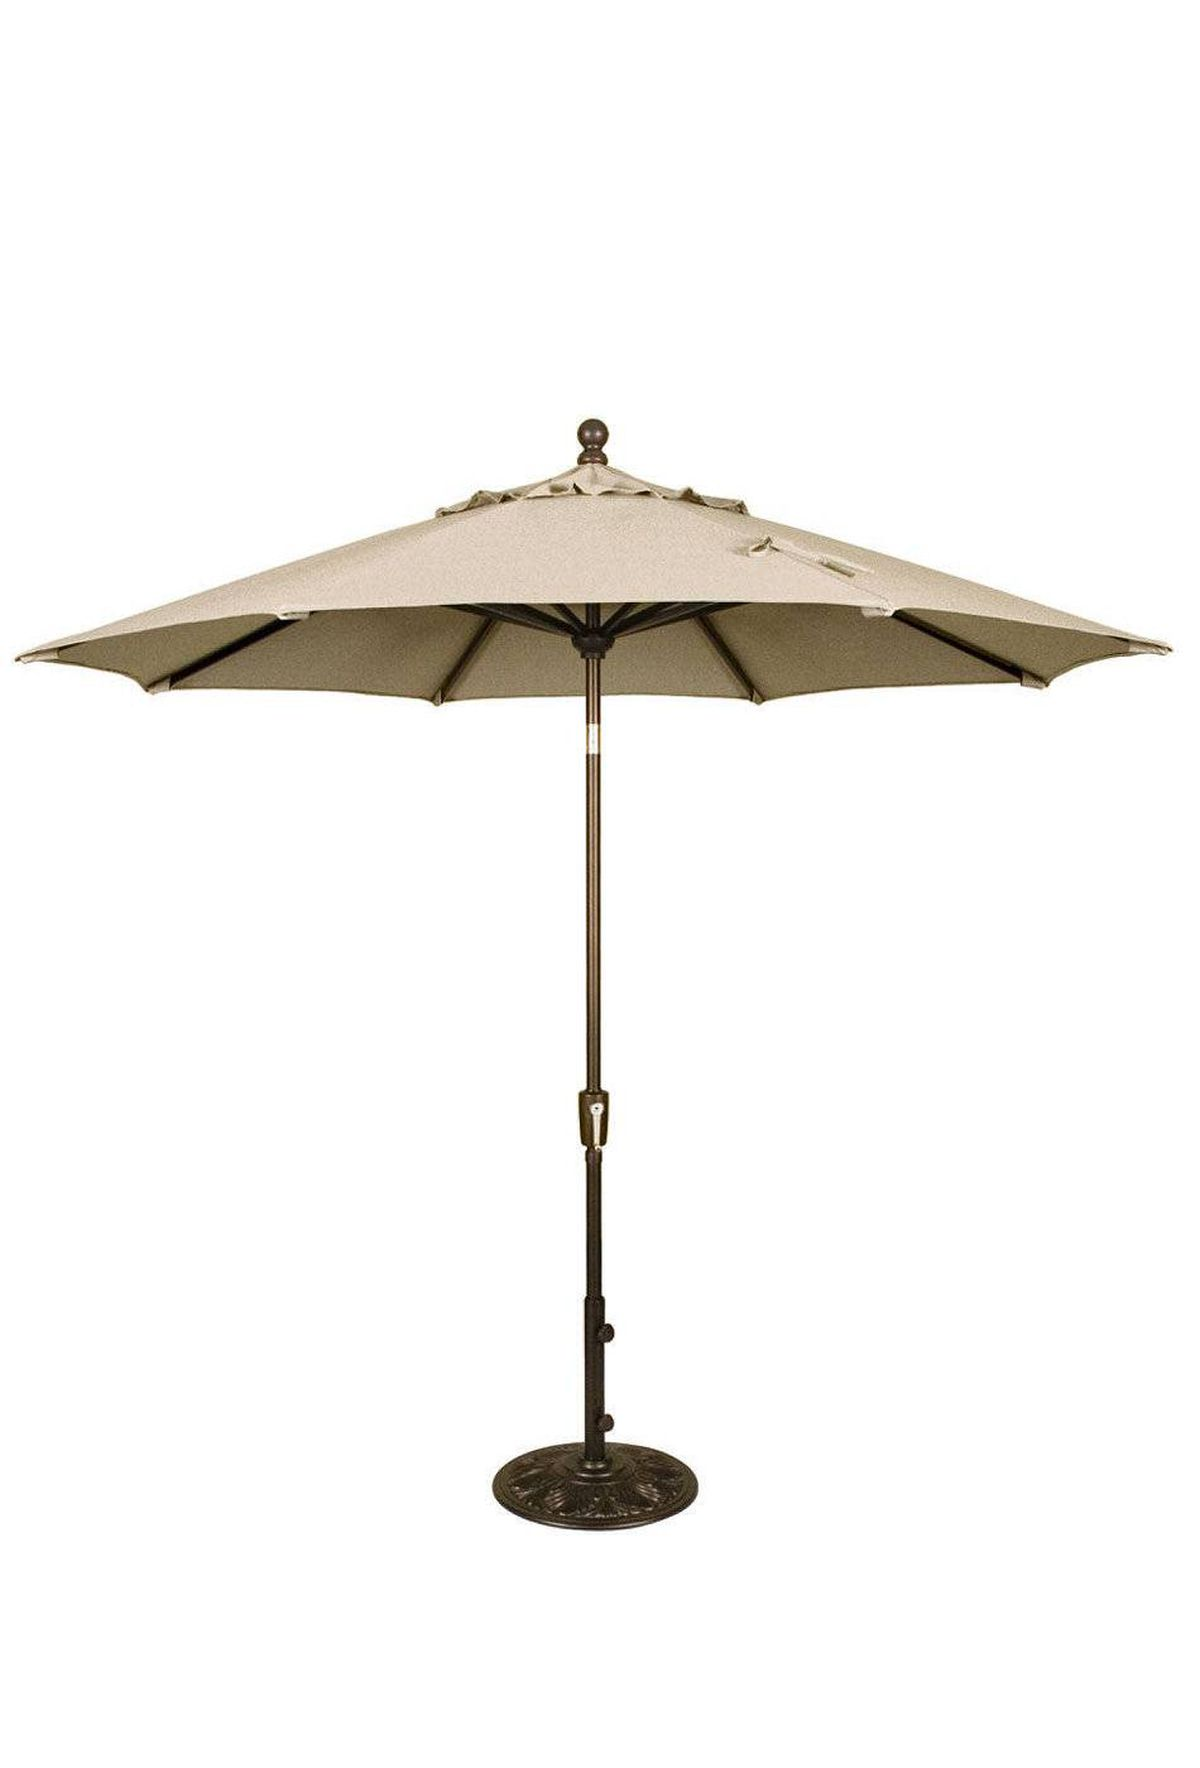 Inside Out's 10-foot-wide polyester market umbrella boasts a rust-free aluminum frame and adjustable tilting function. (Bases, starting at $59.99, are sold separately.) $110 through www.insideoutpatio.ca.